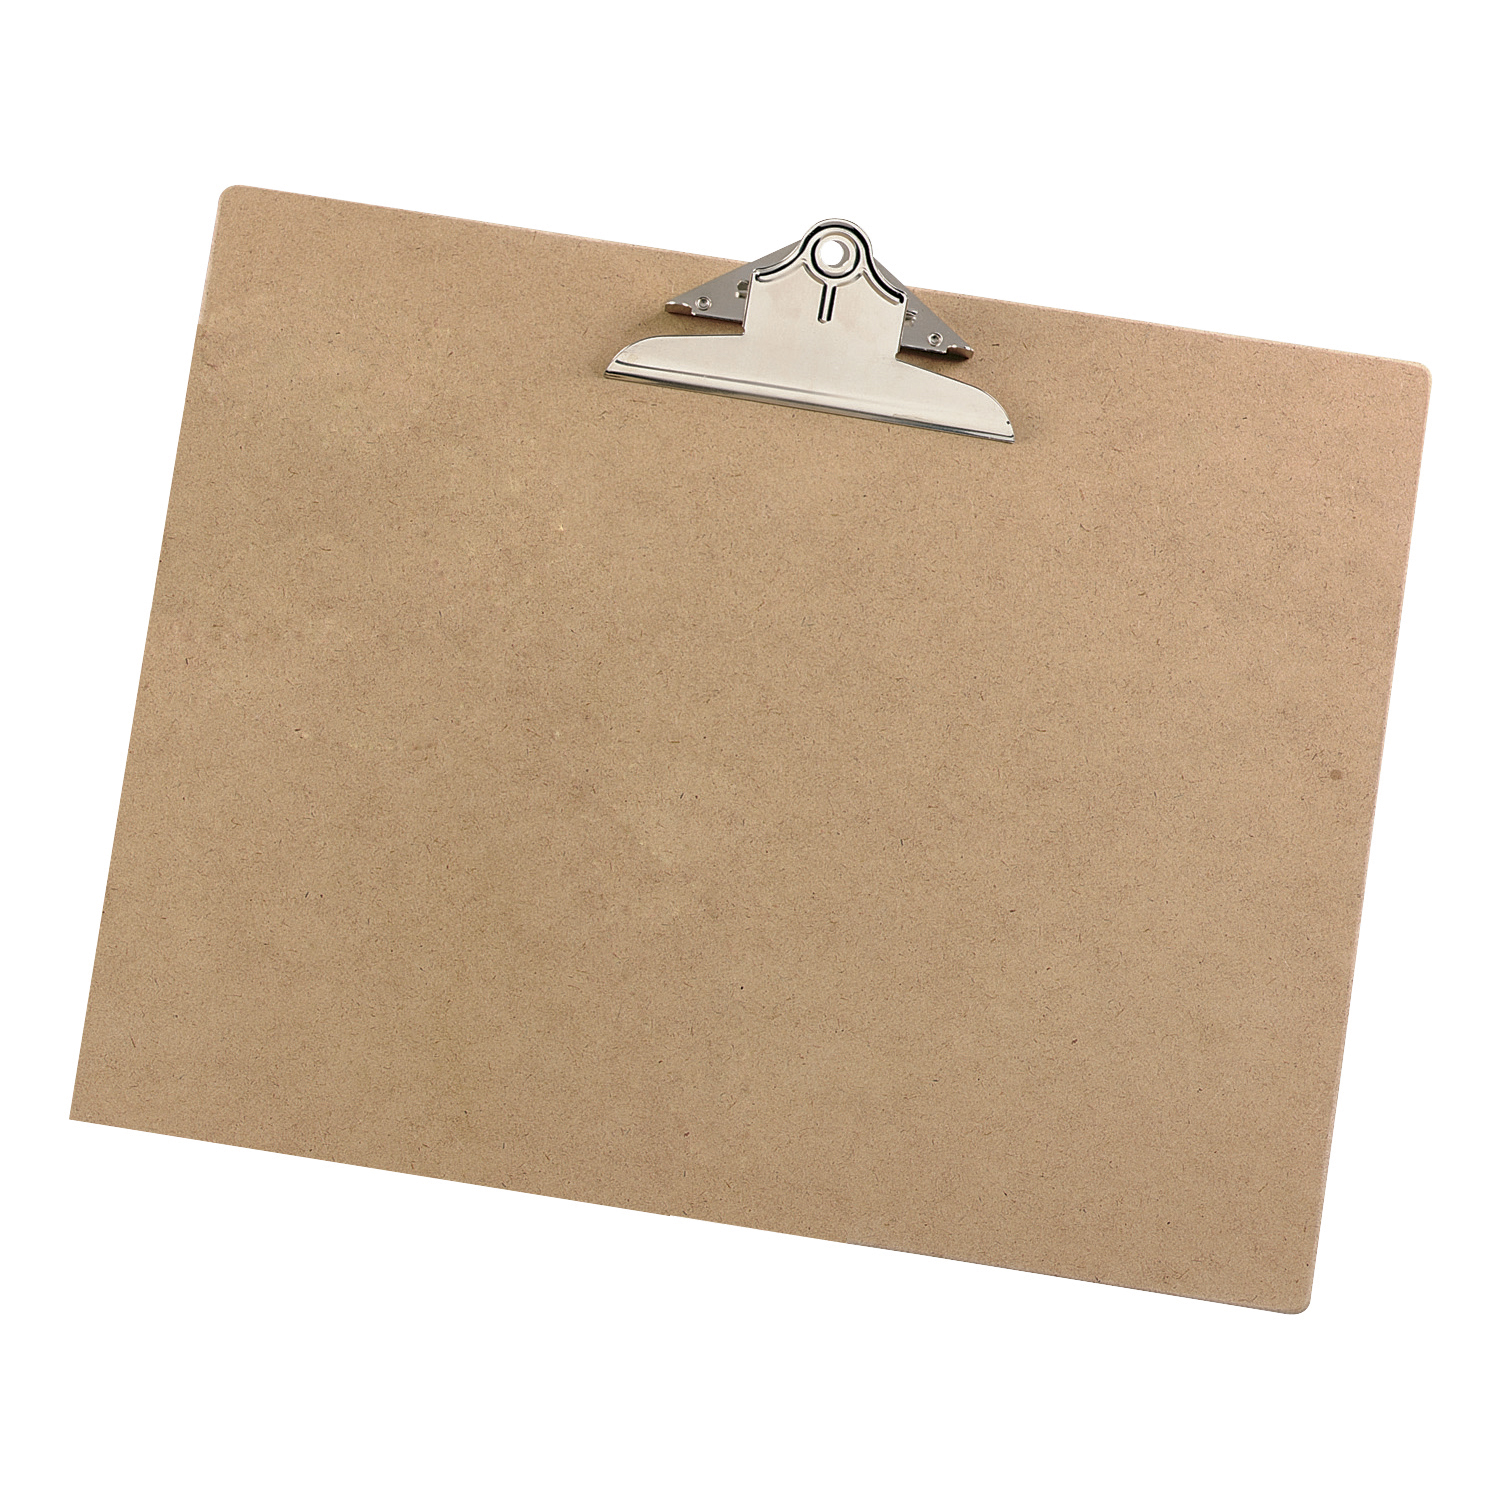 Image for 5 Star Office Clipboard Rigid Hardboard A3